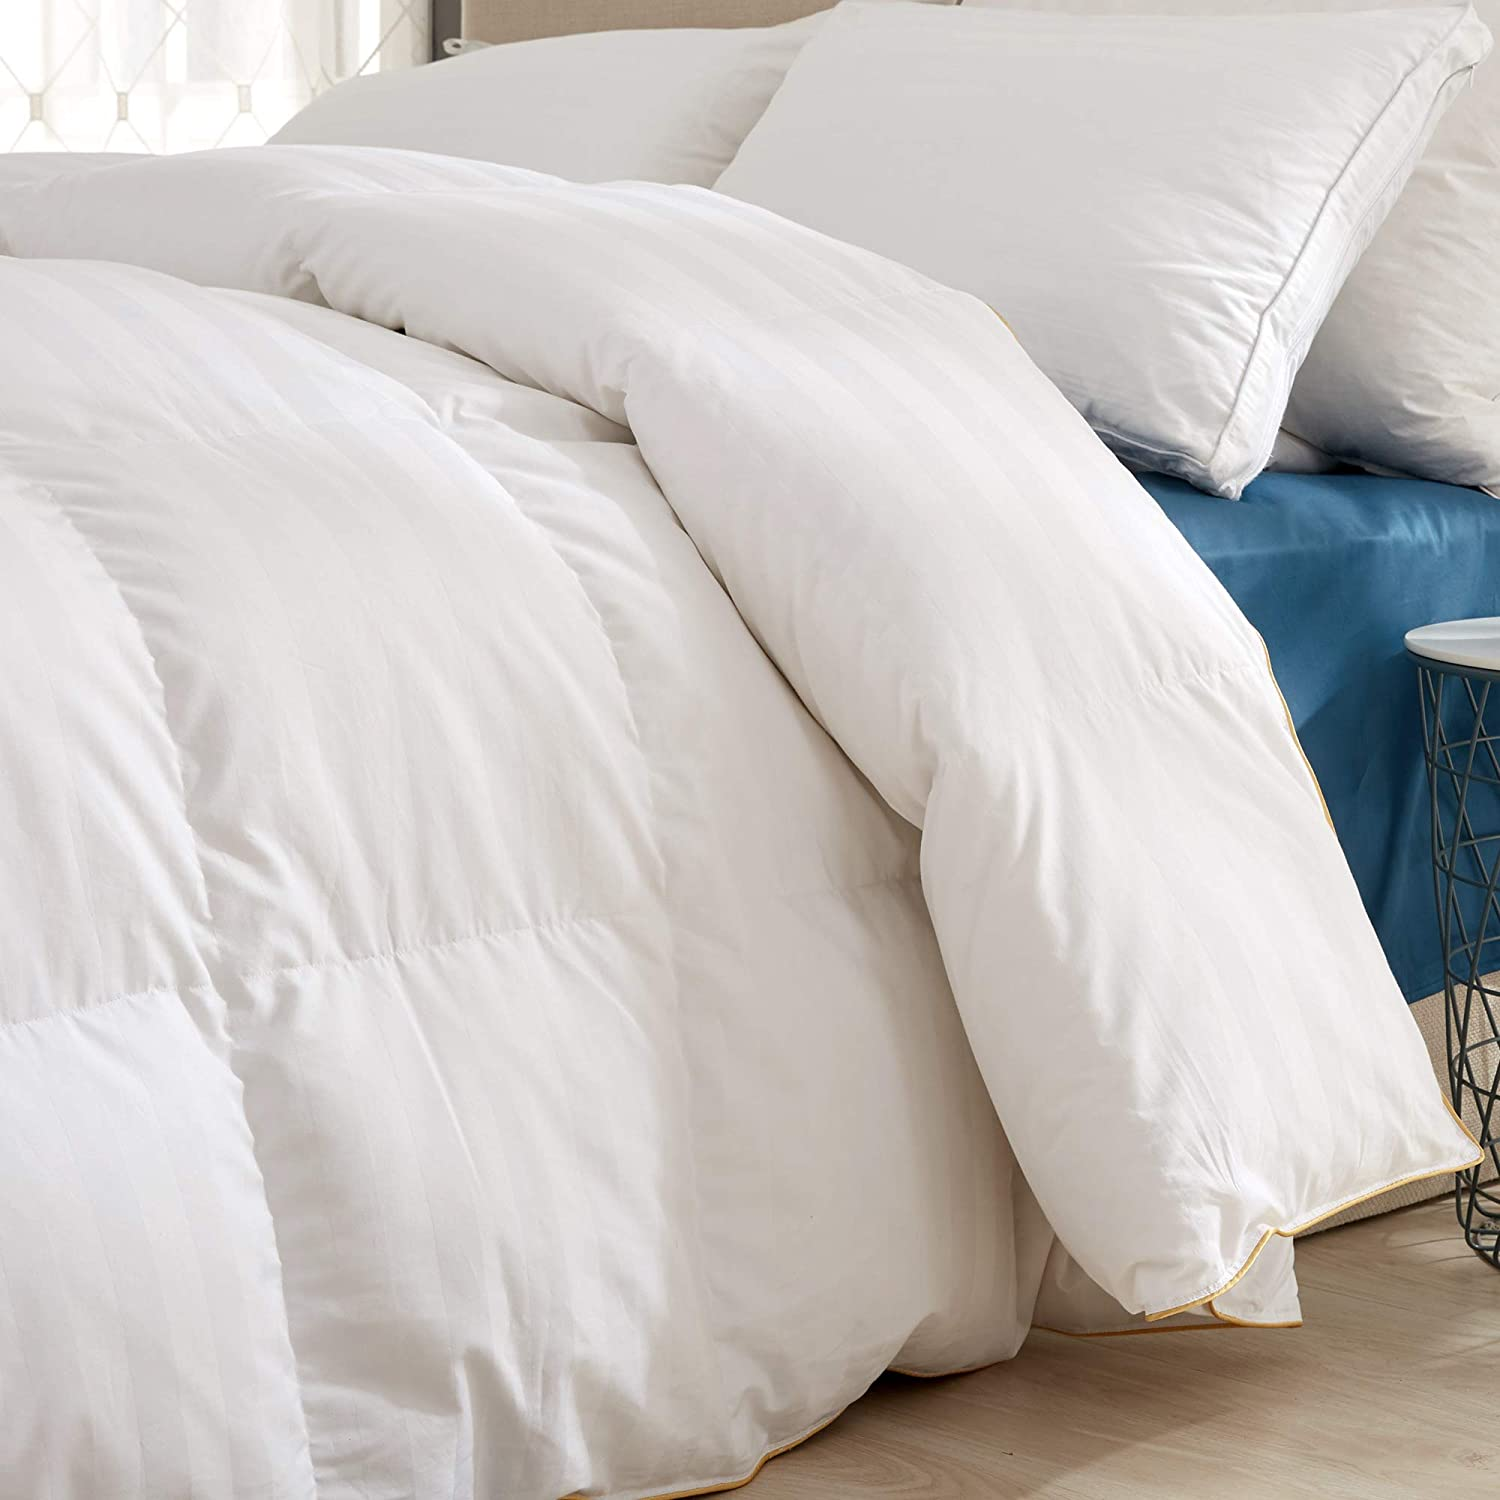 Goose Down Comforter 600 Fill Power Cotton Shell 500 Thread Count Stripe King/Cal King White